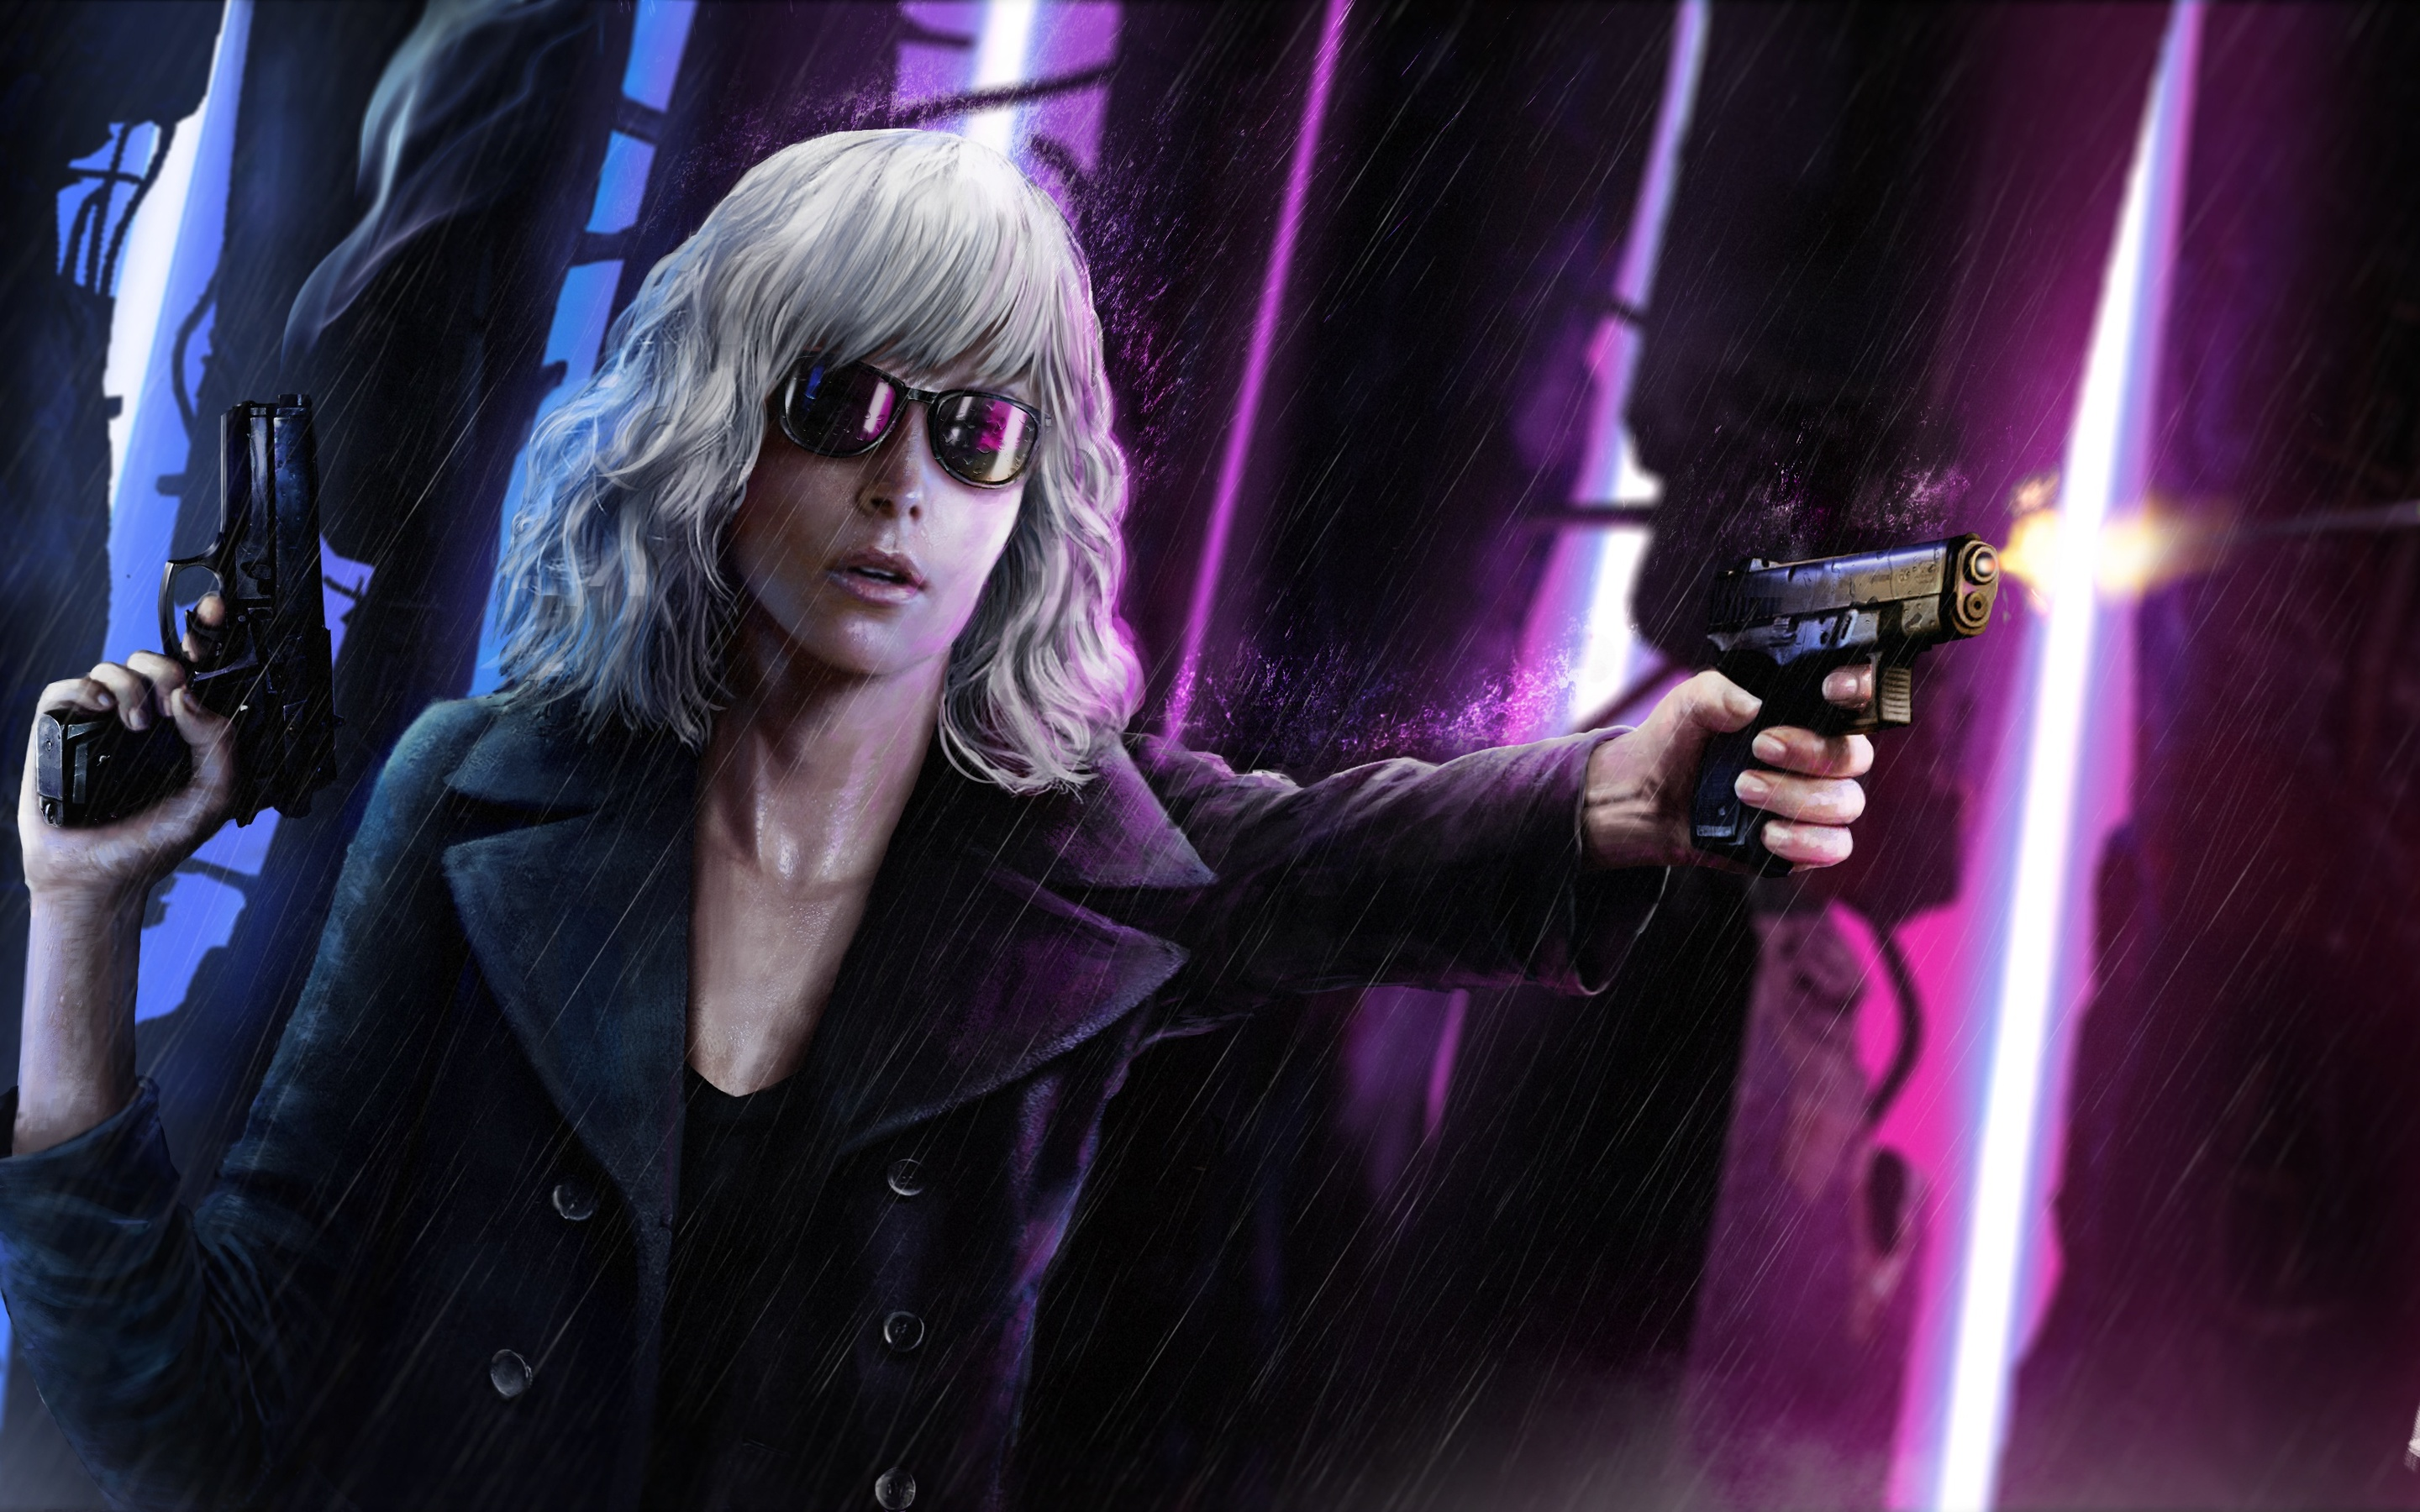 atomic blonde artwork wallpaper background 63113